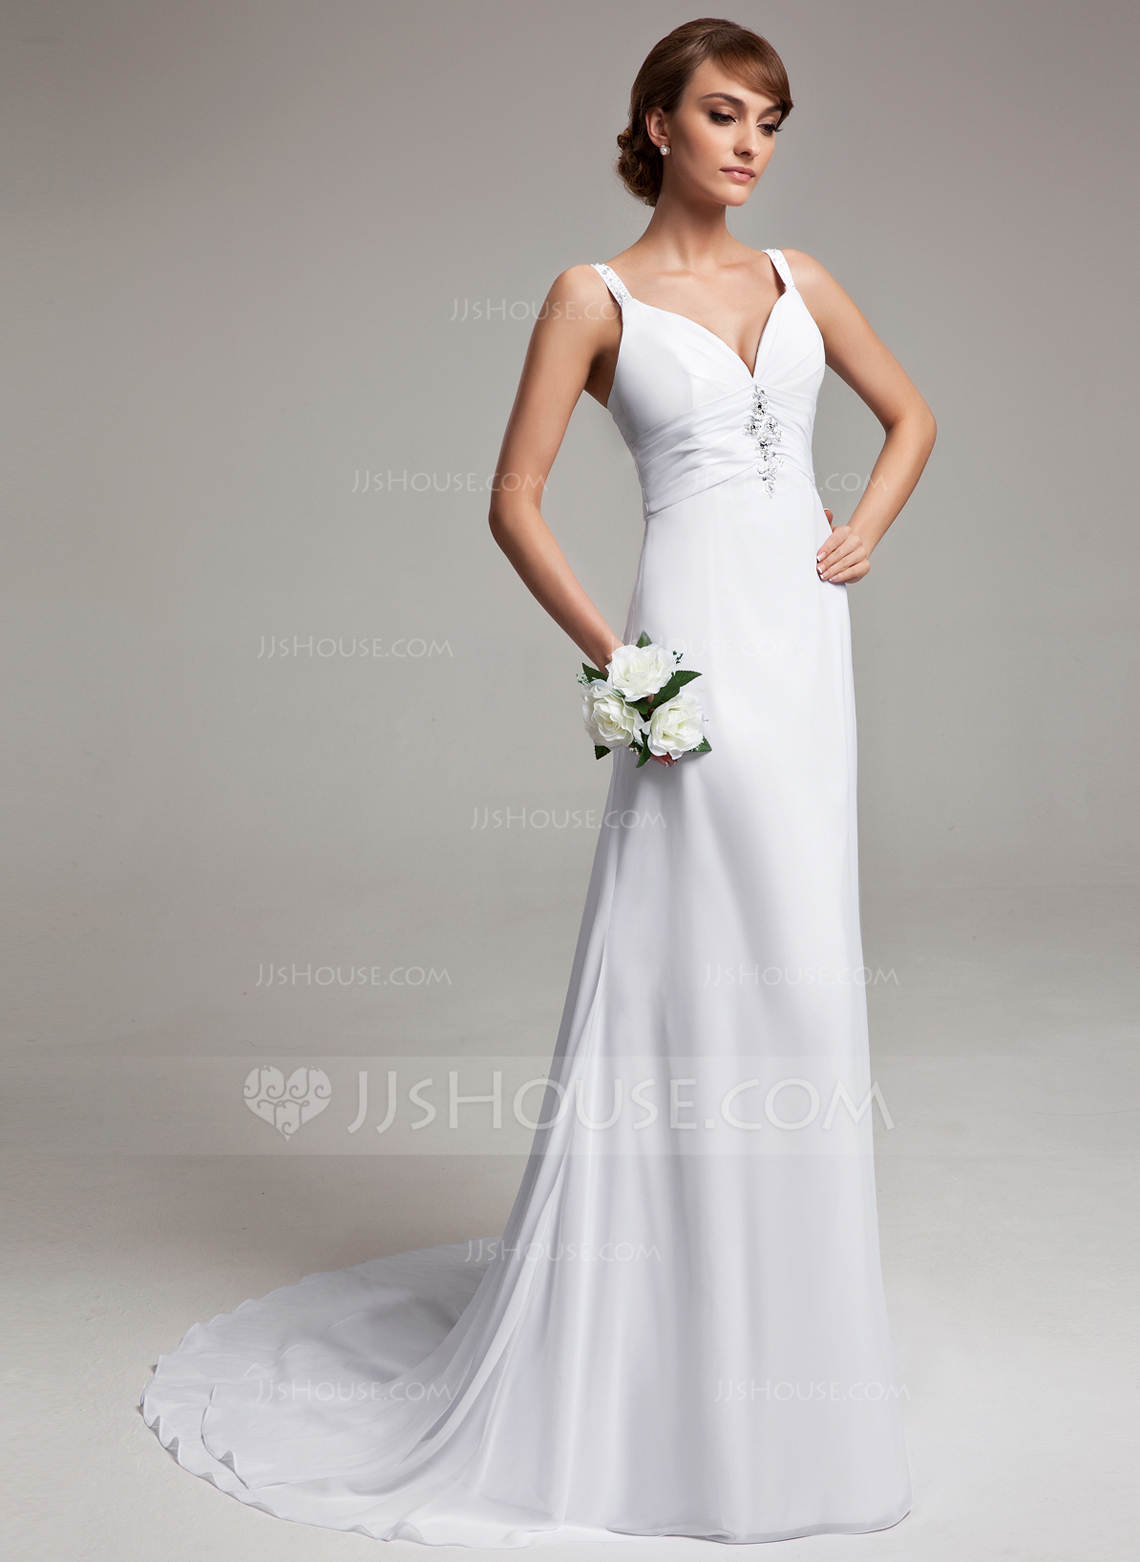 A Line Princess V Neck Court Train Chiffon Wedding Dress With Ruffle Beading g wedding dress chiffon Home Wedding Dresses Loading zoom